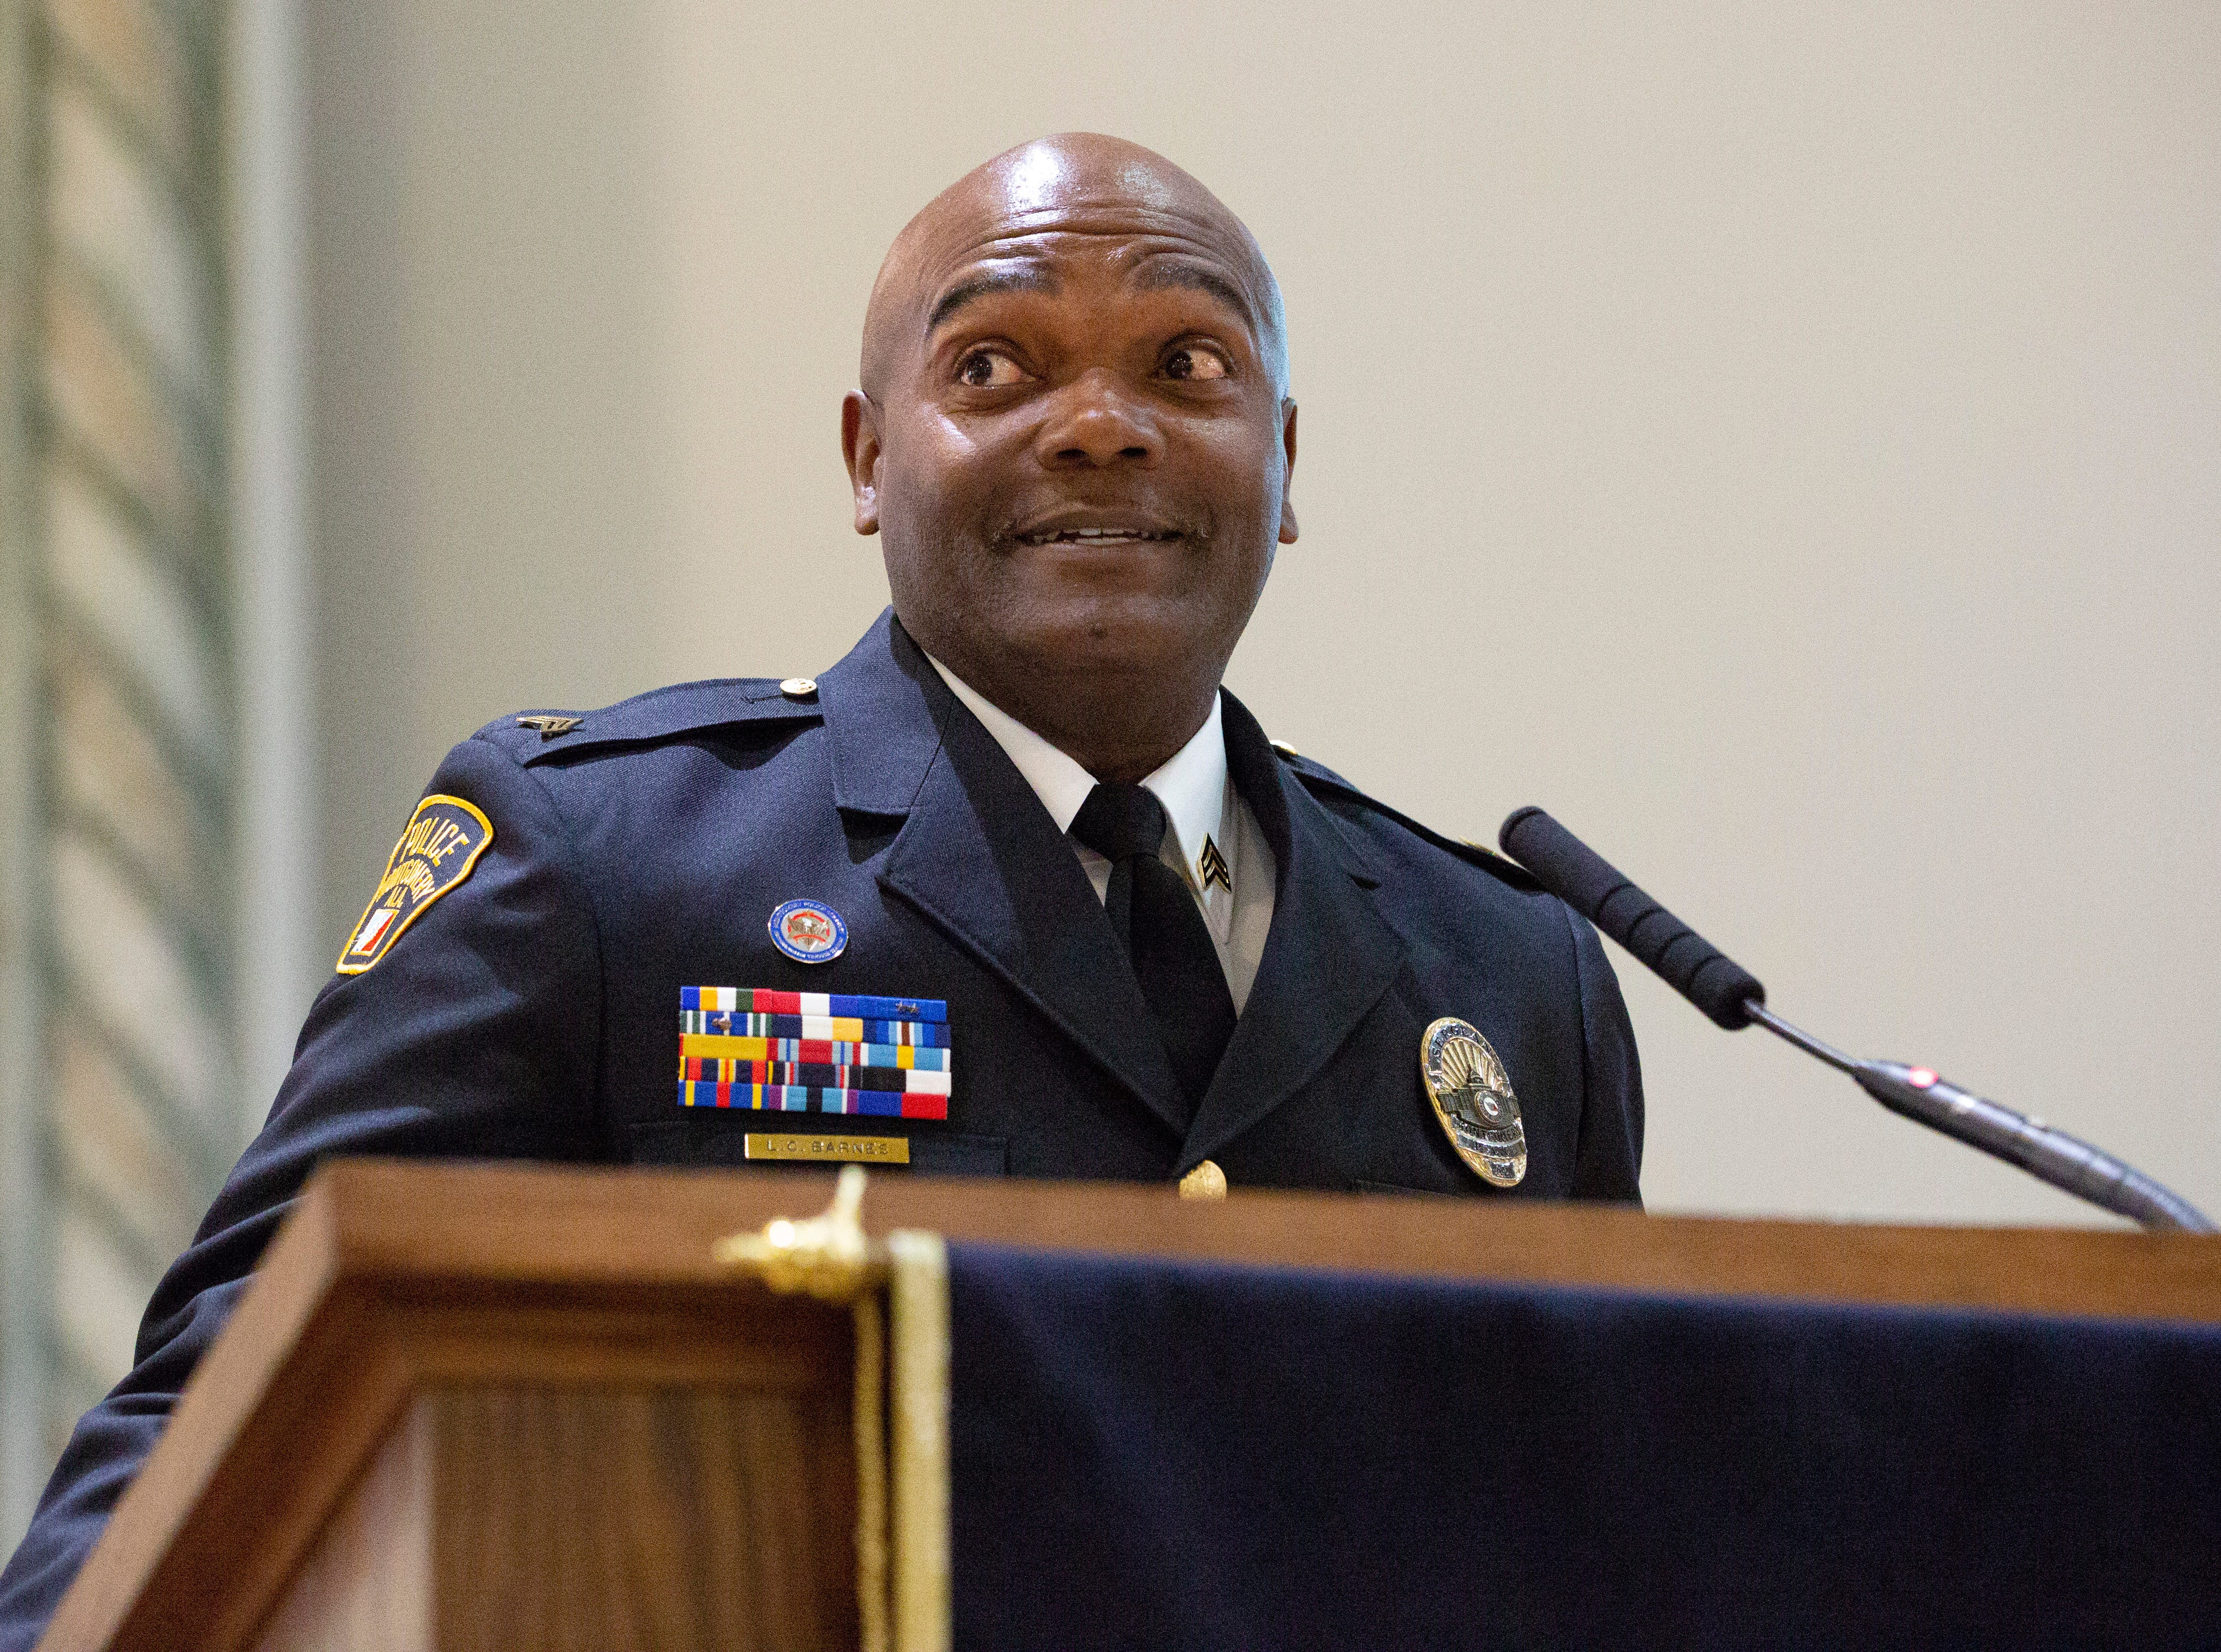 Montgomery police Sgt. L.C. Barnes speaks during a graduation ceremony for new police officers.